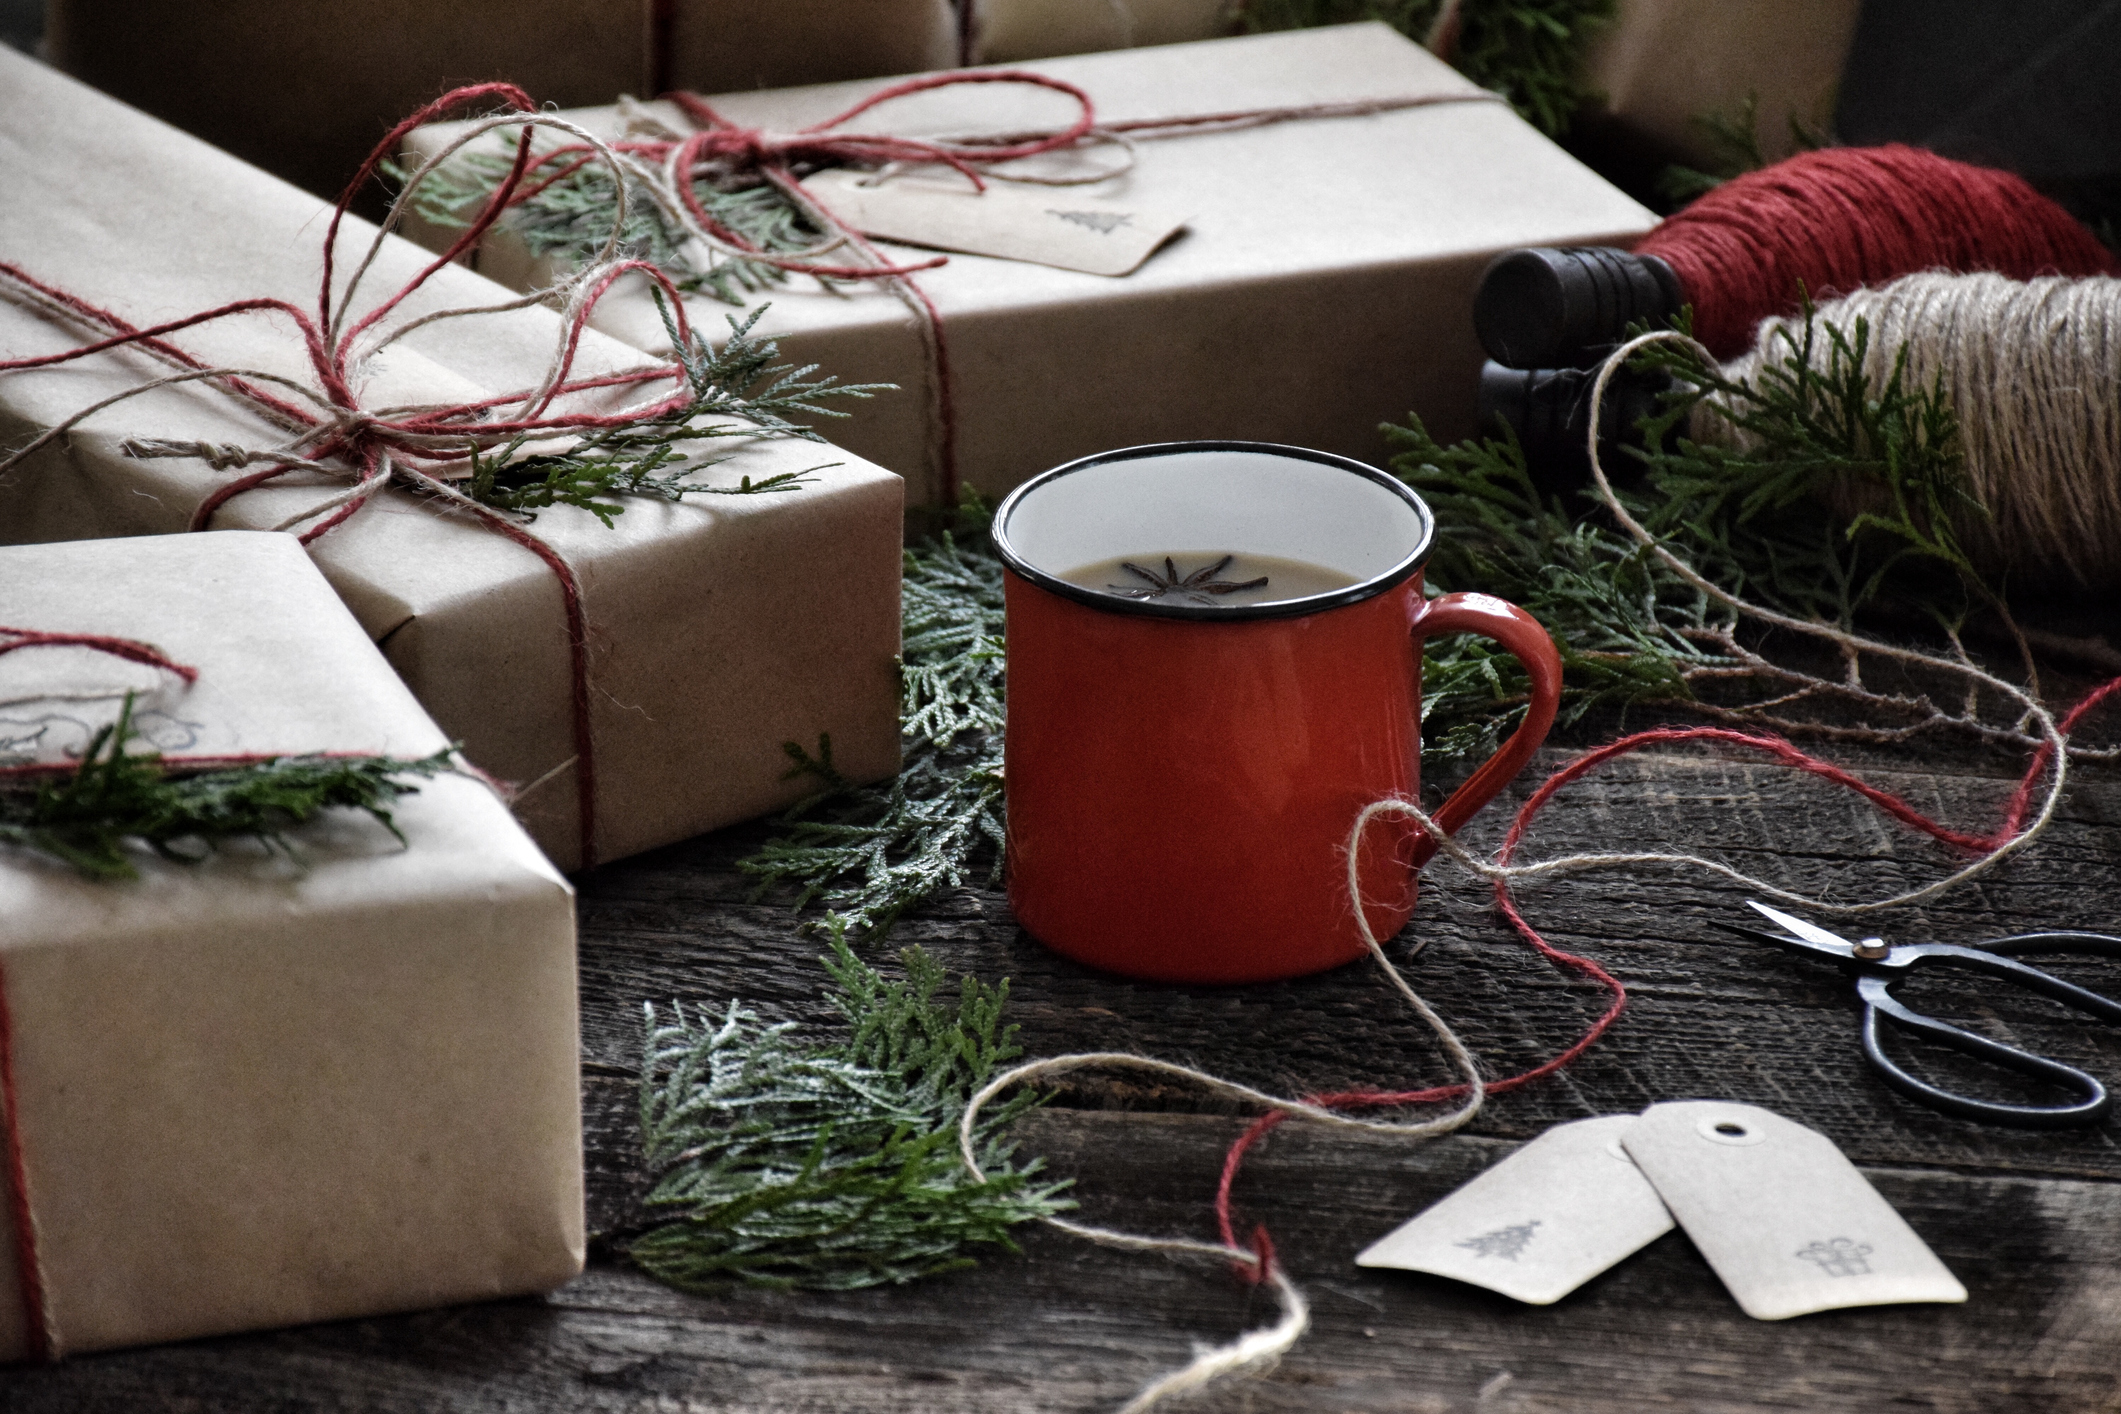 Wrapped gifts with a cup of tea